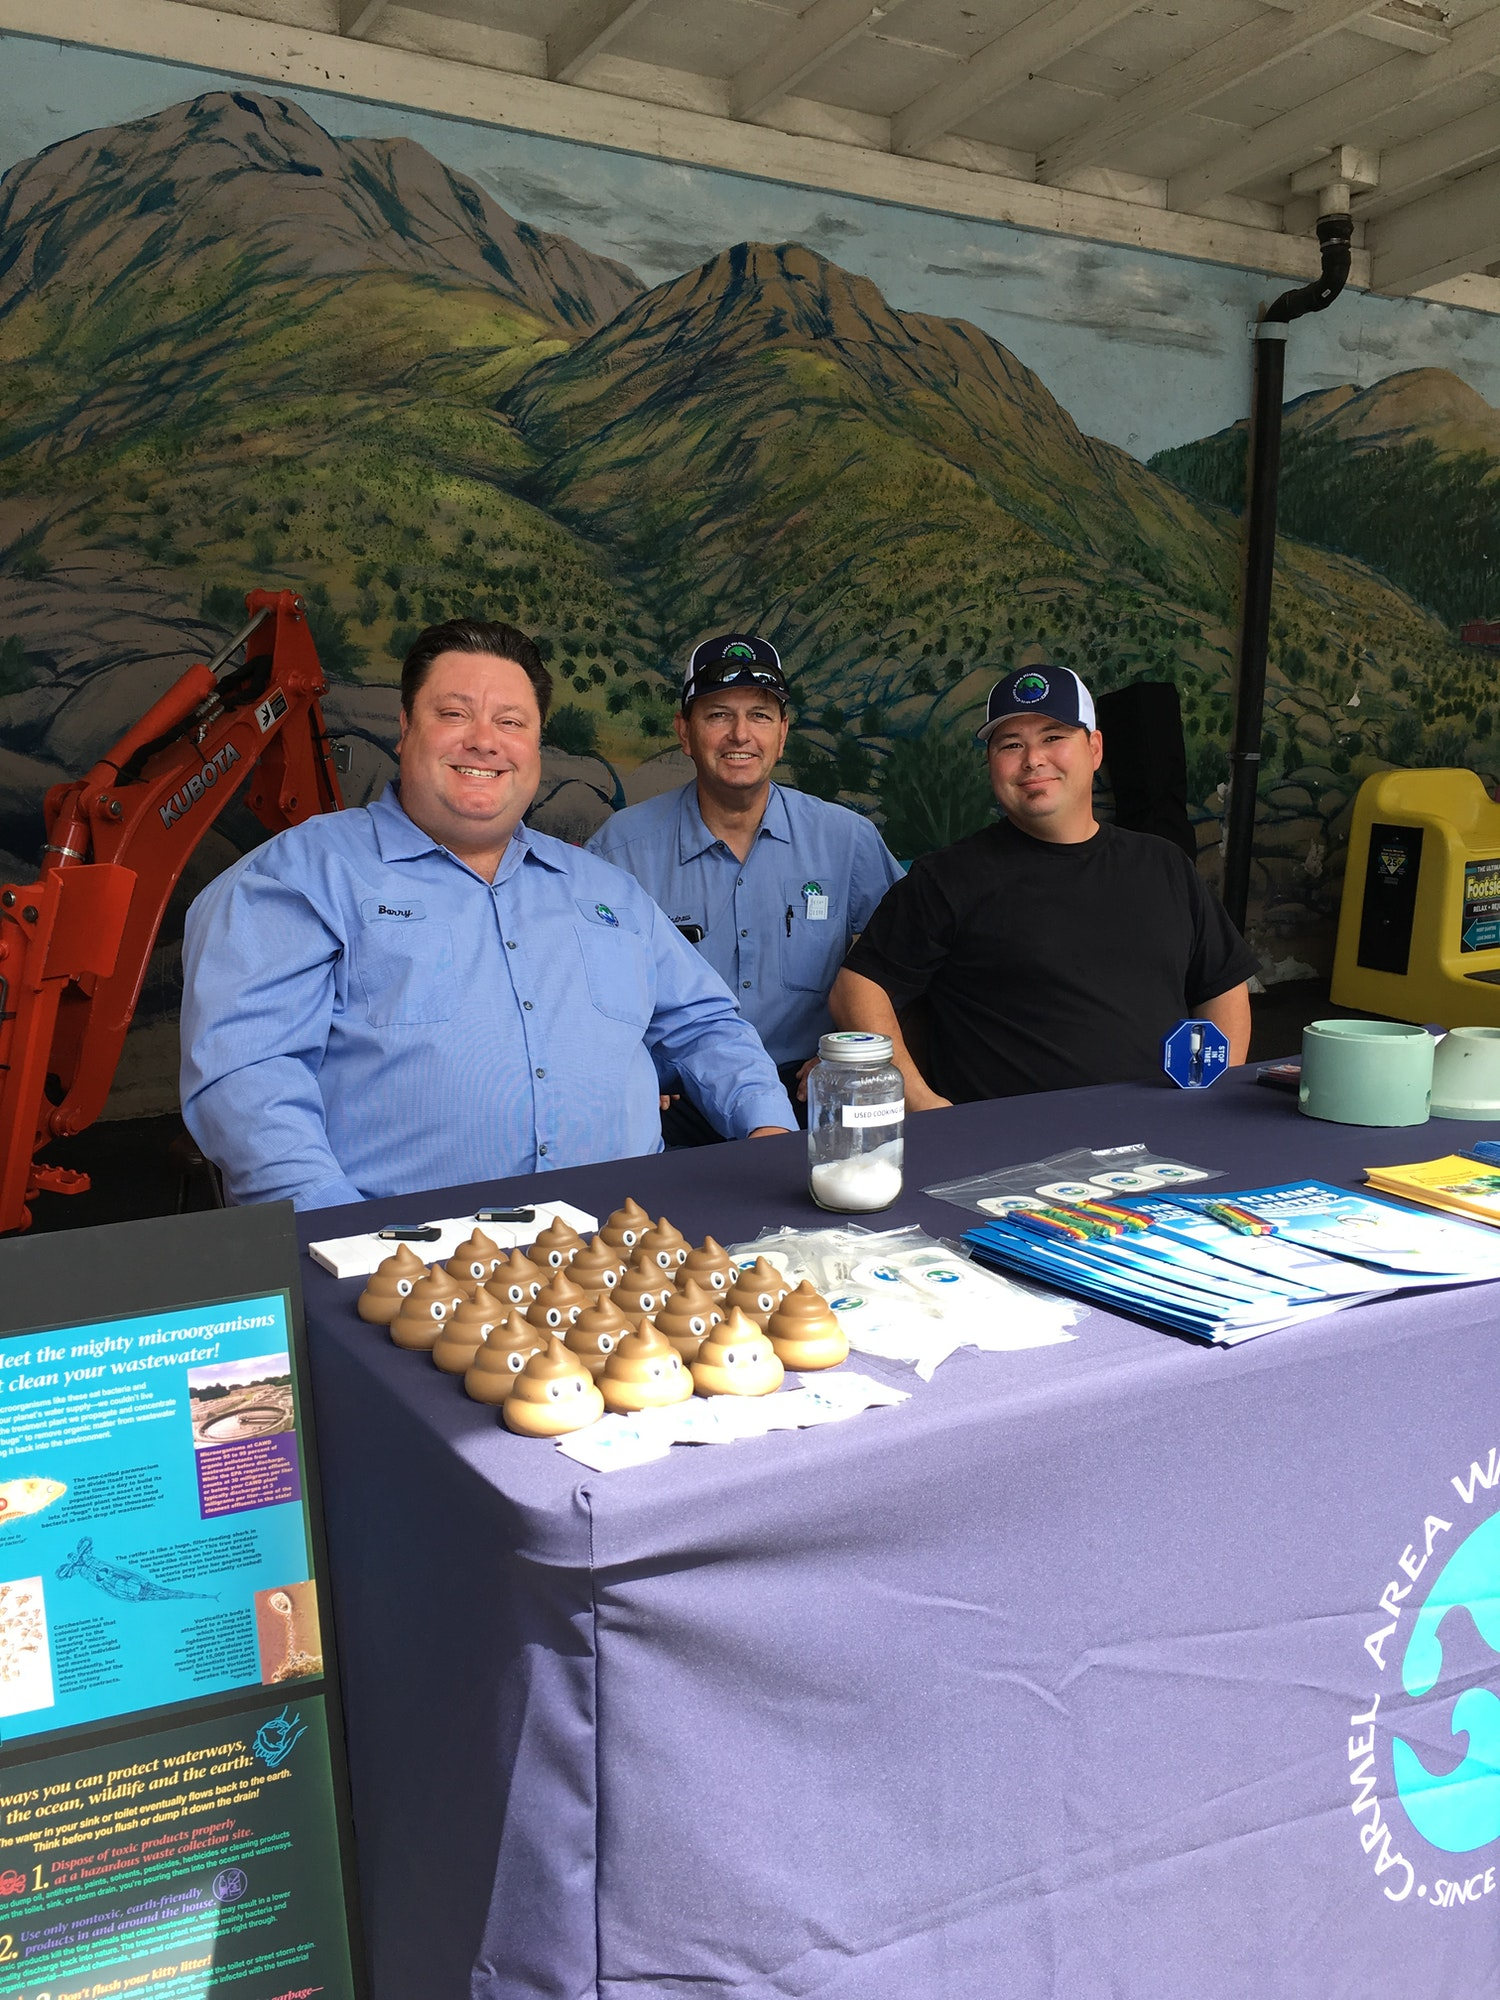 2019-08-31 Carmel Area Watewater Staff Education Booth at Monterey County Fair-with popular Mr. Poop.'s squeeze.